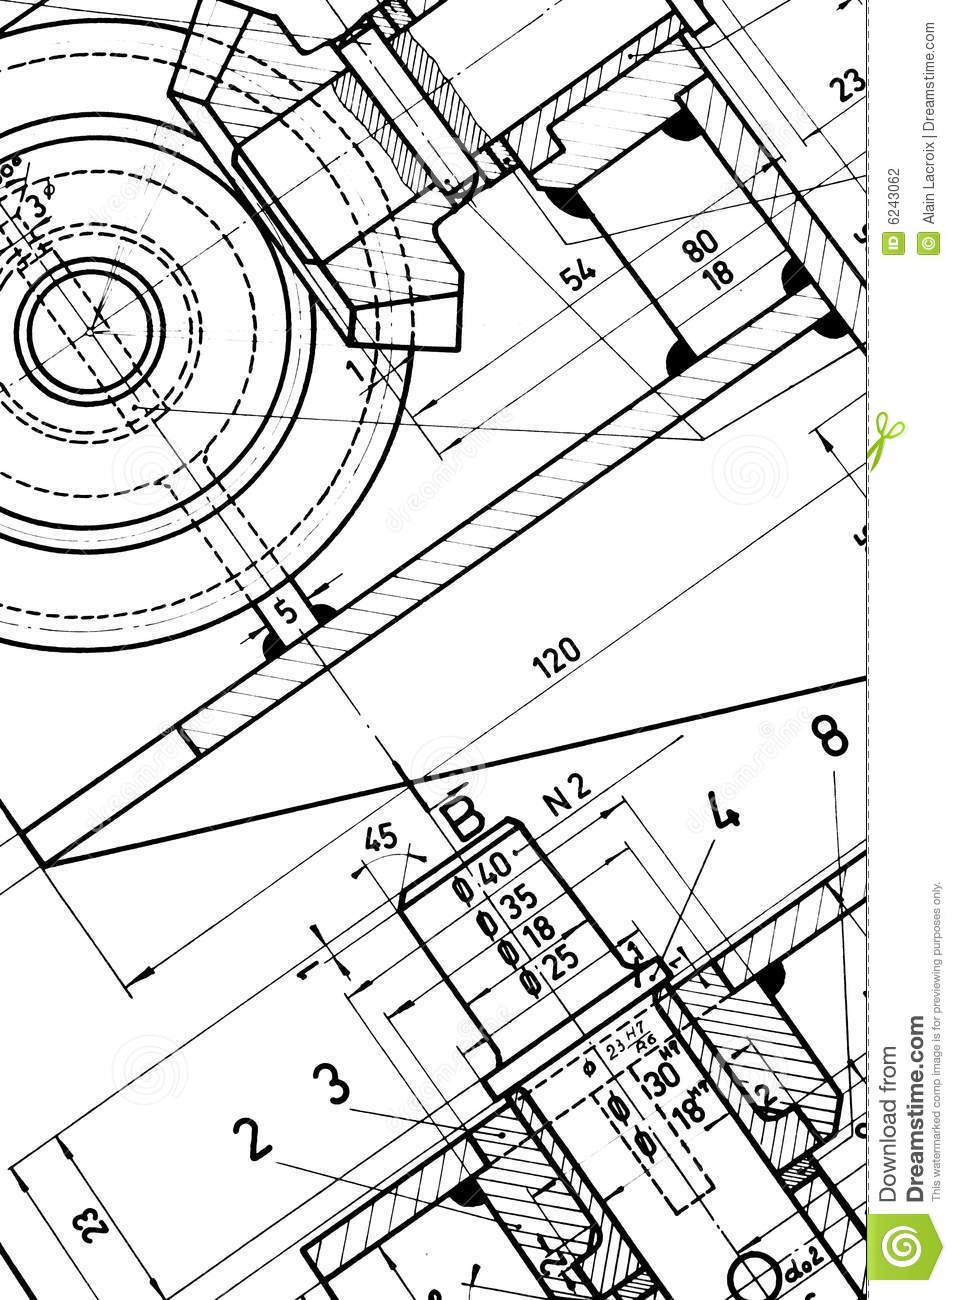 Engineering blueprint stock photo image of design blueprint 6243062 engineering blueprint malvernweather Image collections